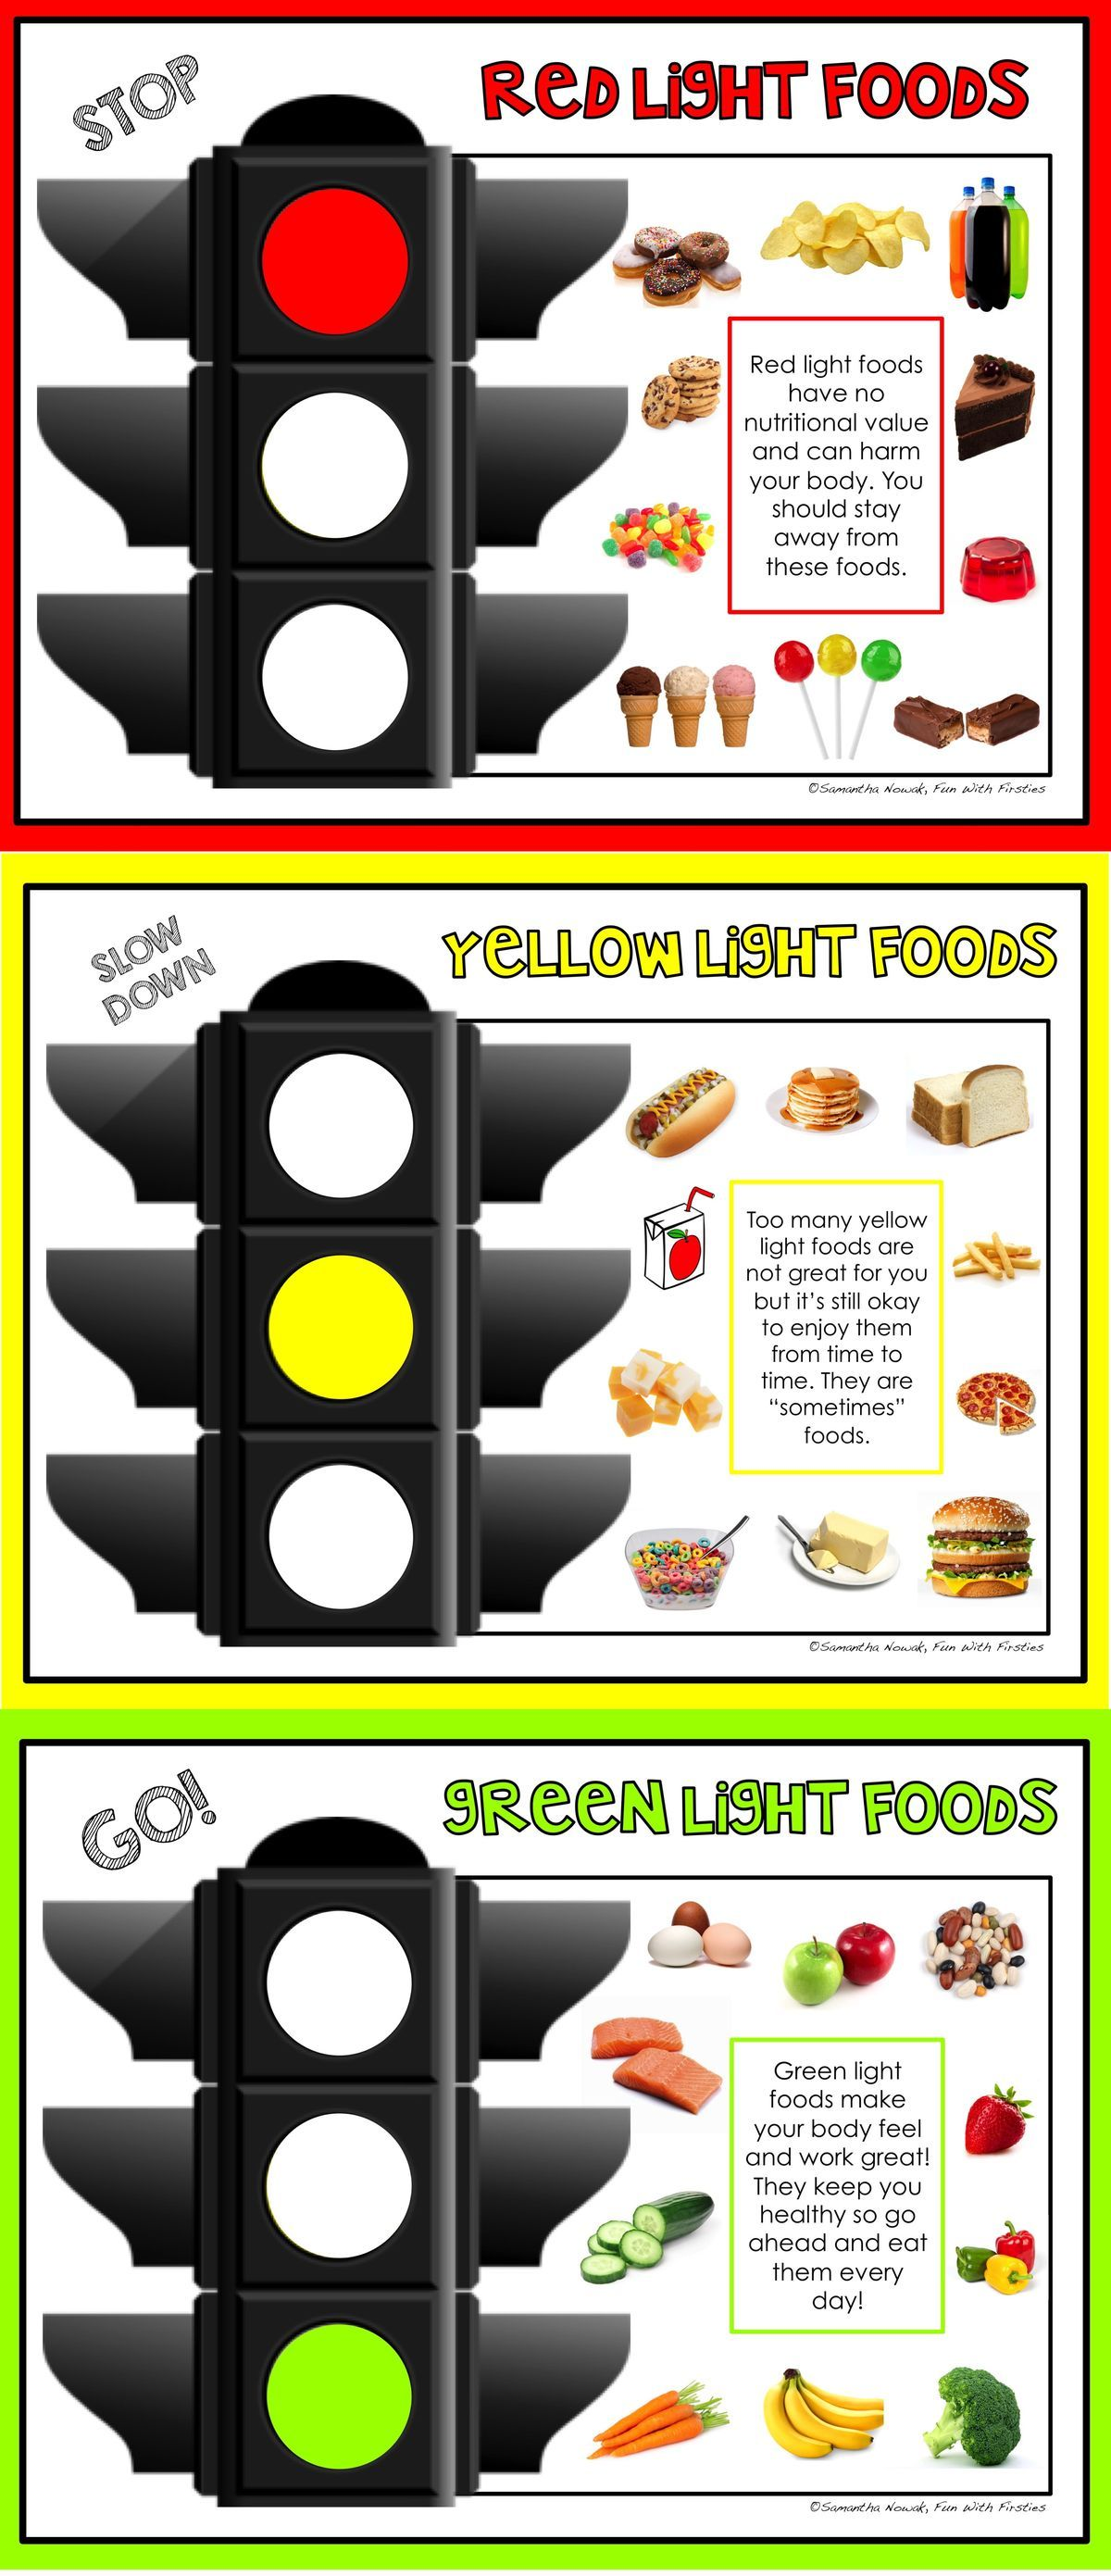 All About Traffic Light Eating And Red Light Foods